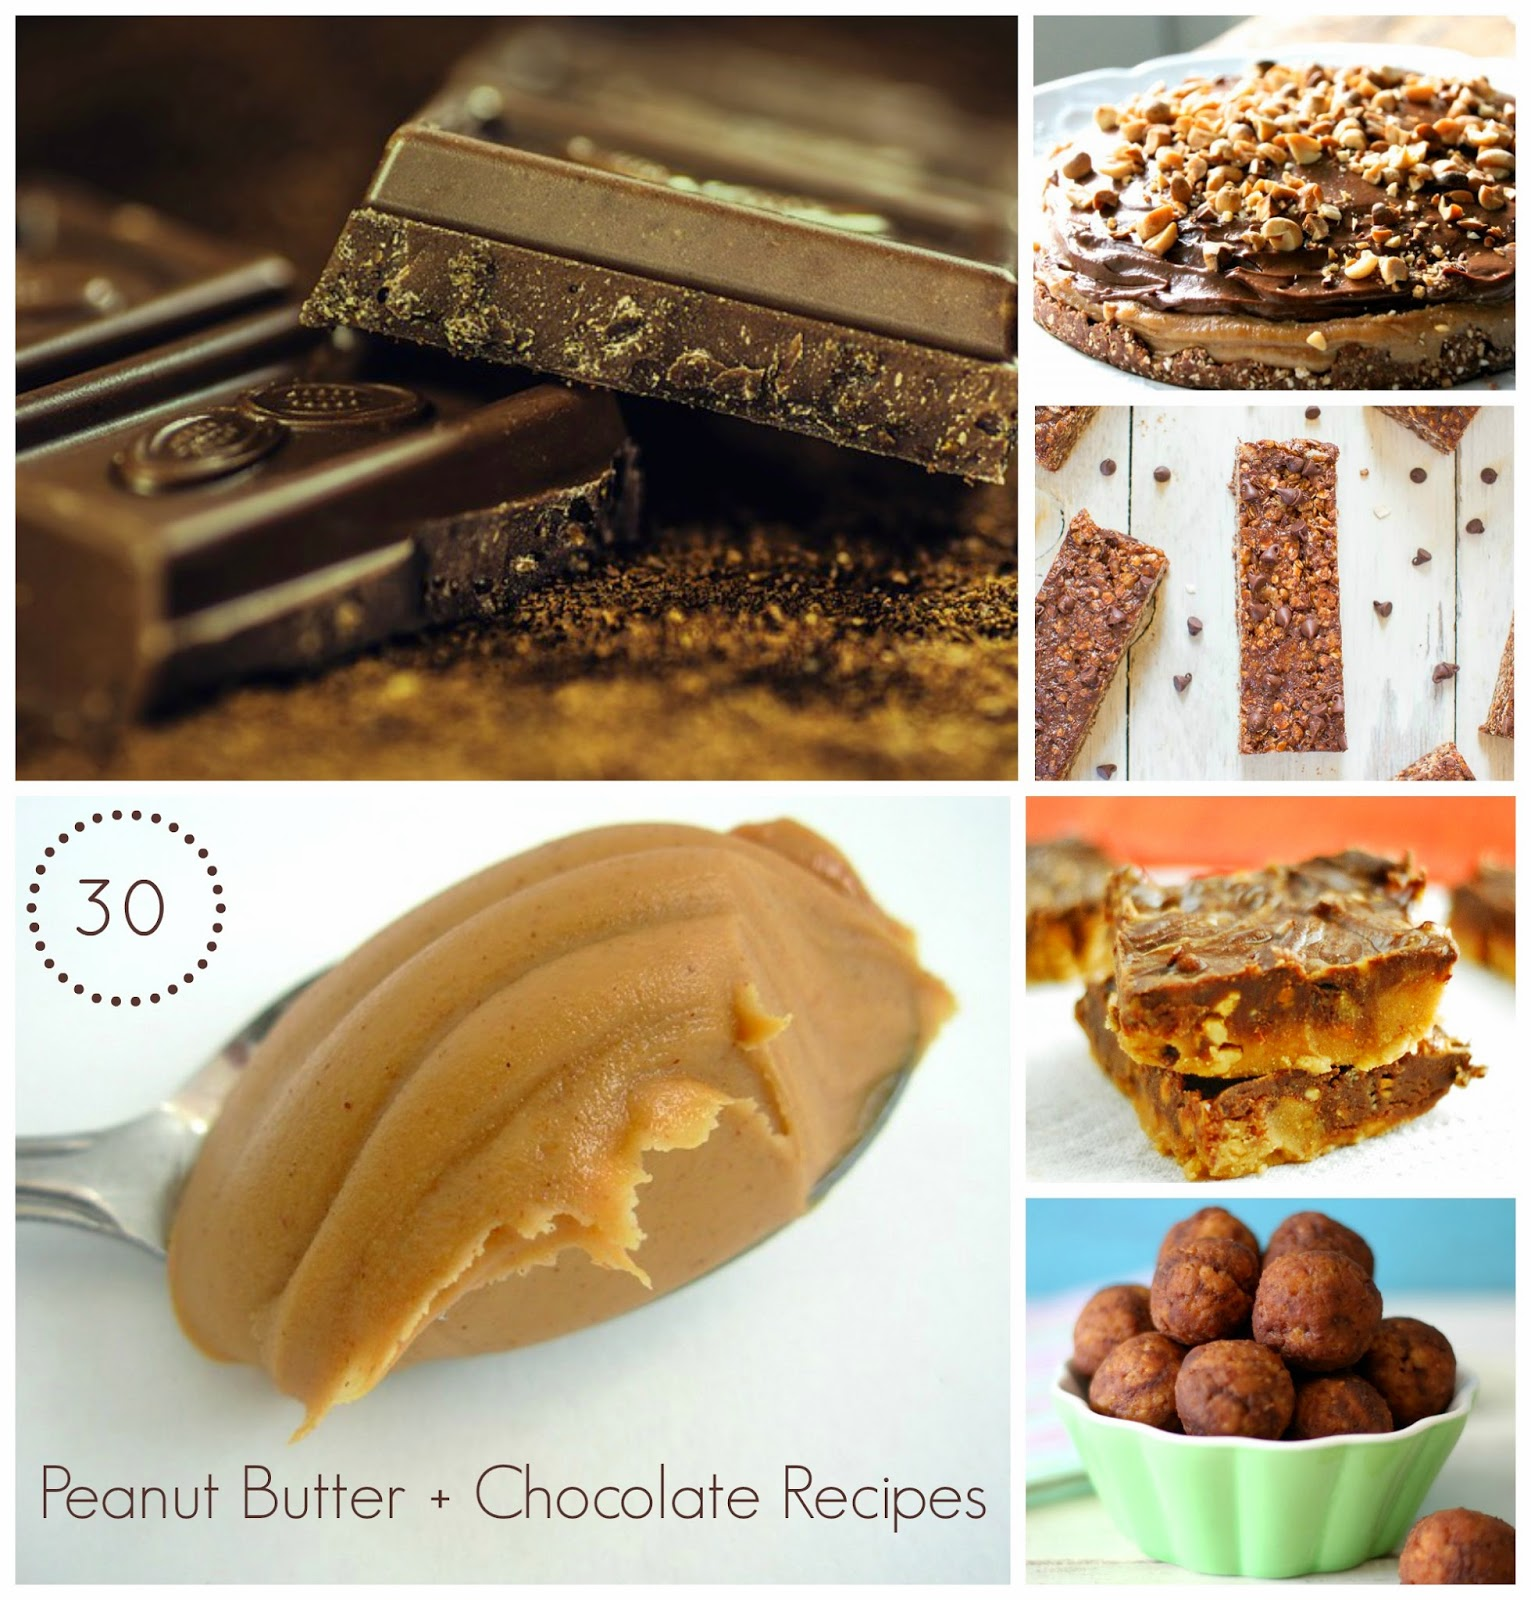 Peanut Butter With Chocolate Recipes {Healthy}